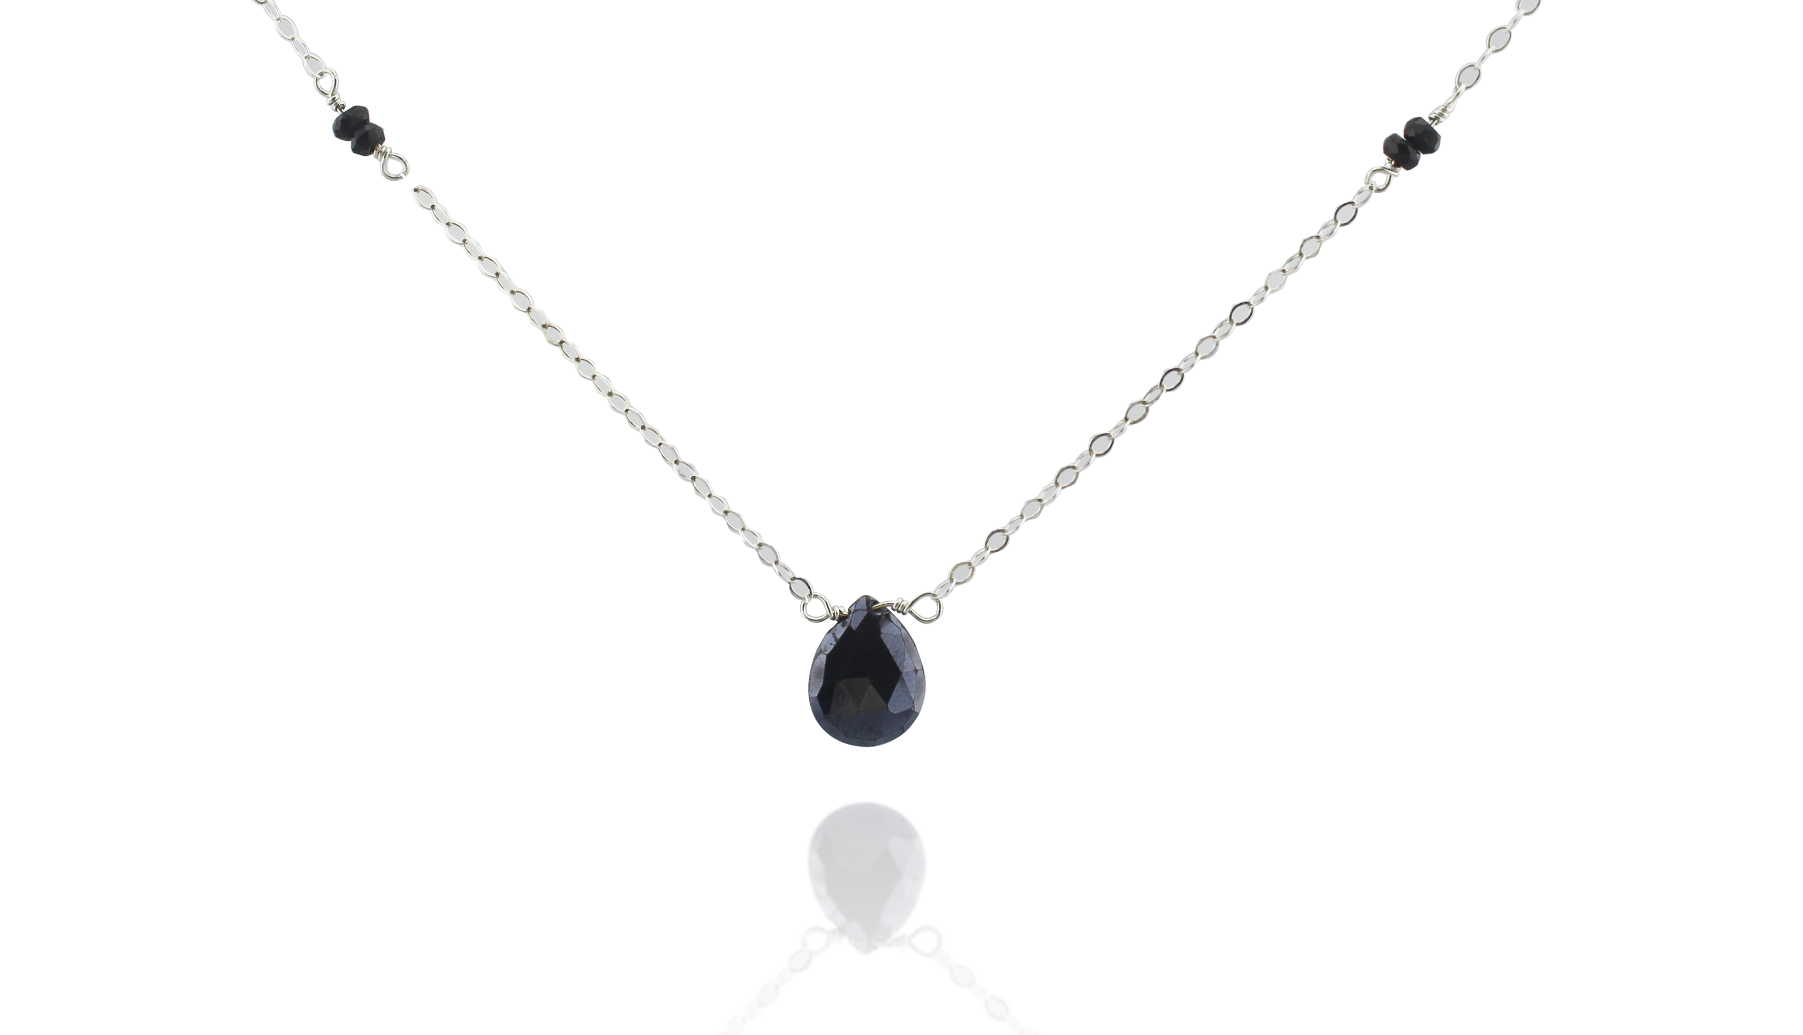 Black Spinel + Tourmaline Necklace